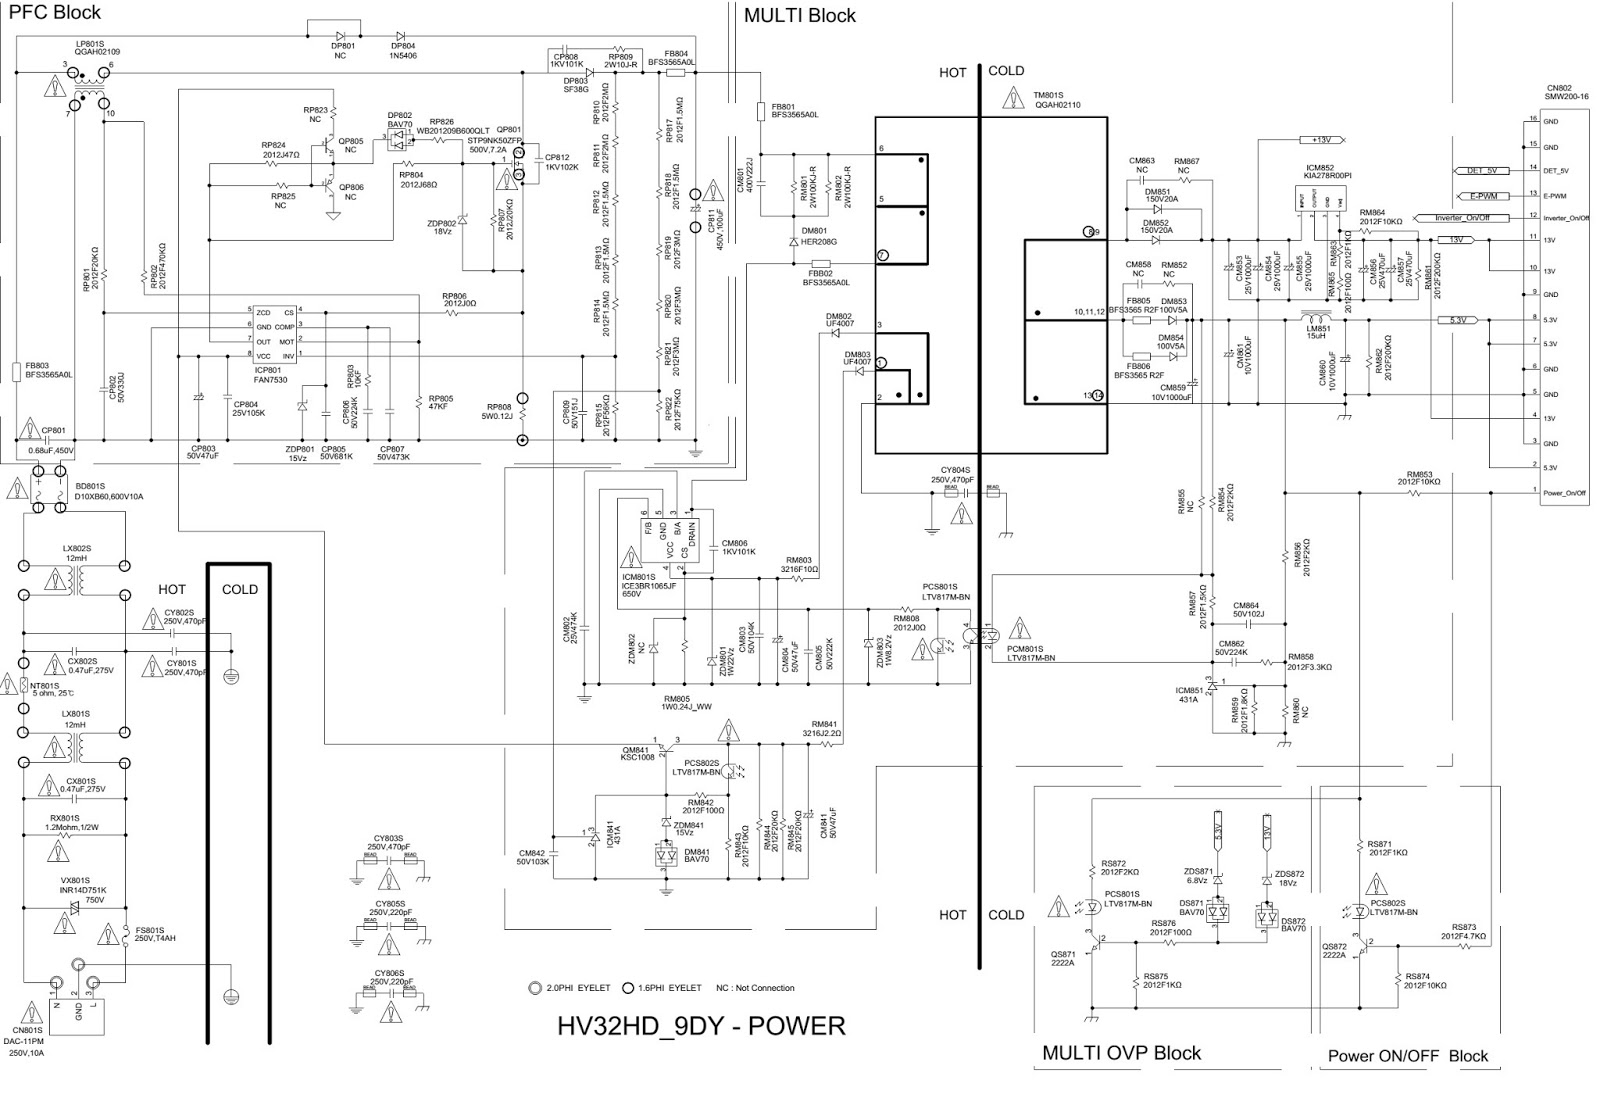 Lg Microwave Oven Circuit Diagram Generac Whole House Transfer Switch Wiring Tv Schematic Lcd Diagrams Block Diagramsamsung Smart Manual E Books